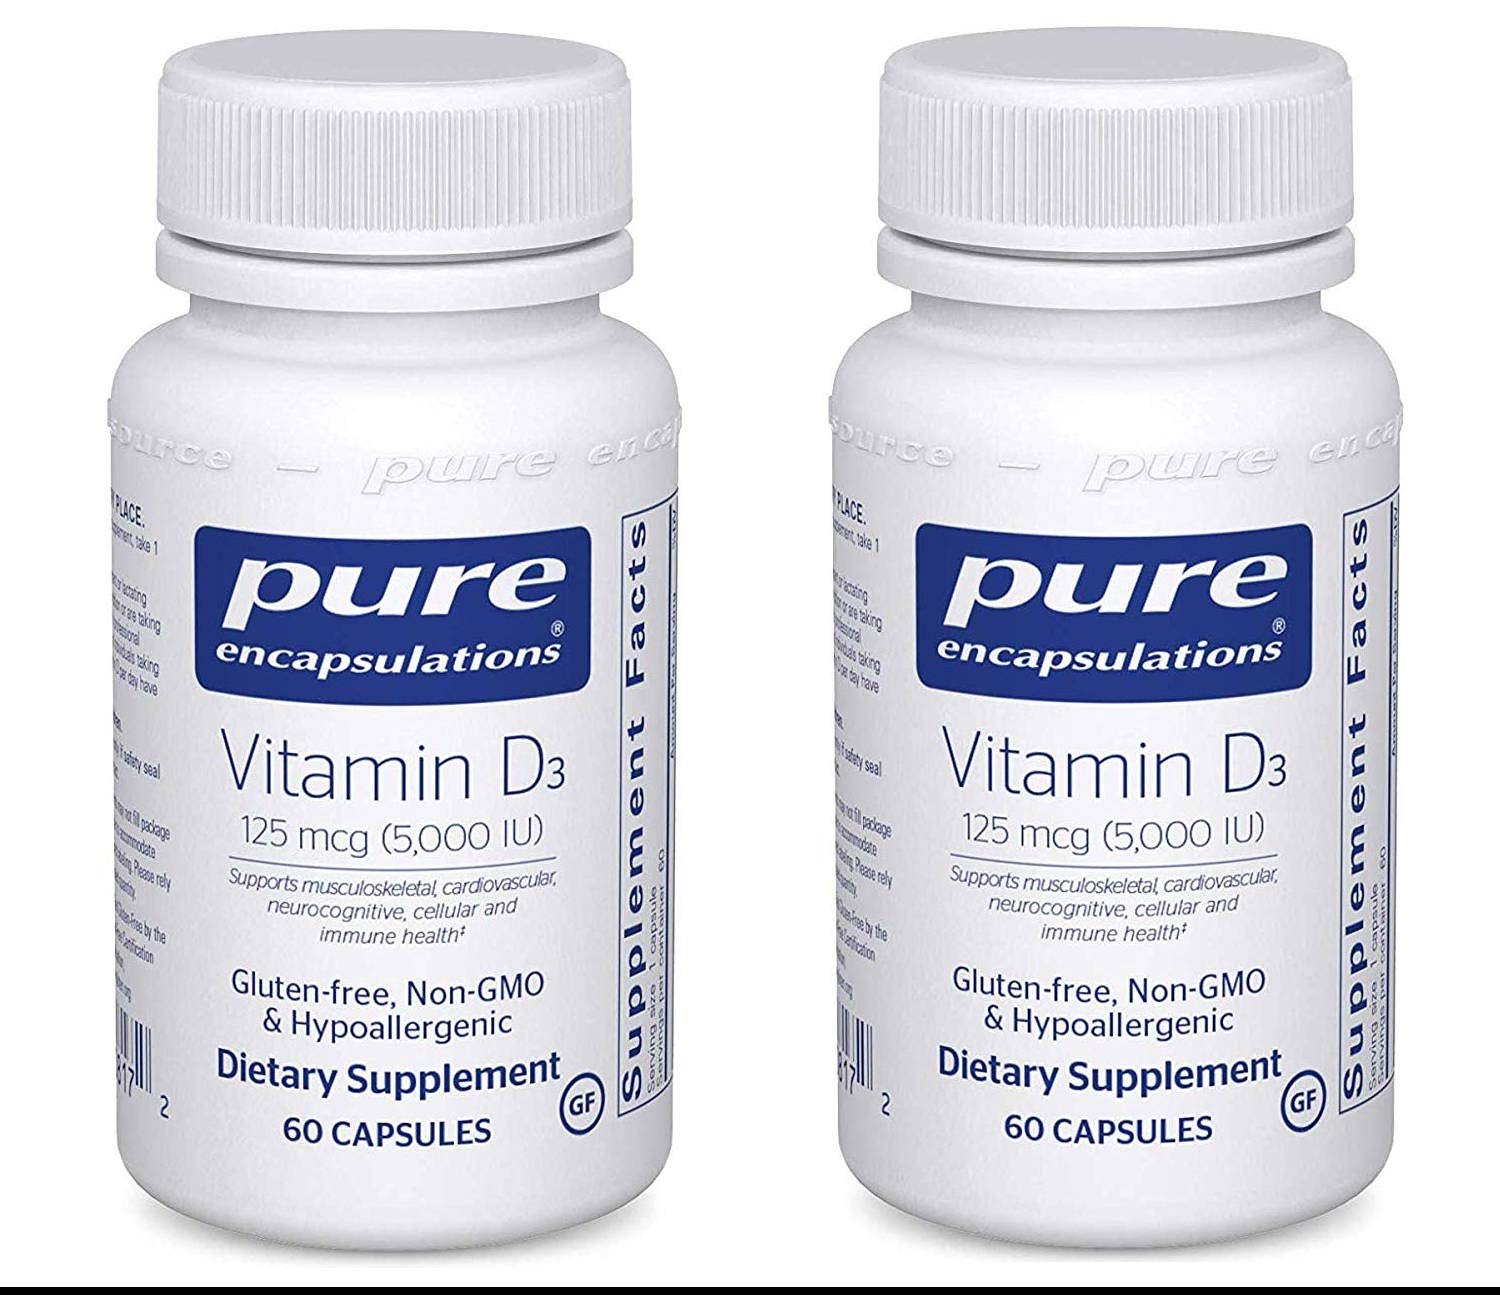 Pure Encapsulations Vitamin D3 5,000 IU Supports Musculoskeletal, Cardiovascular, Neurocognitive, Cellular and Immune Health (60 Capsules) Pack of 2